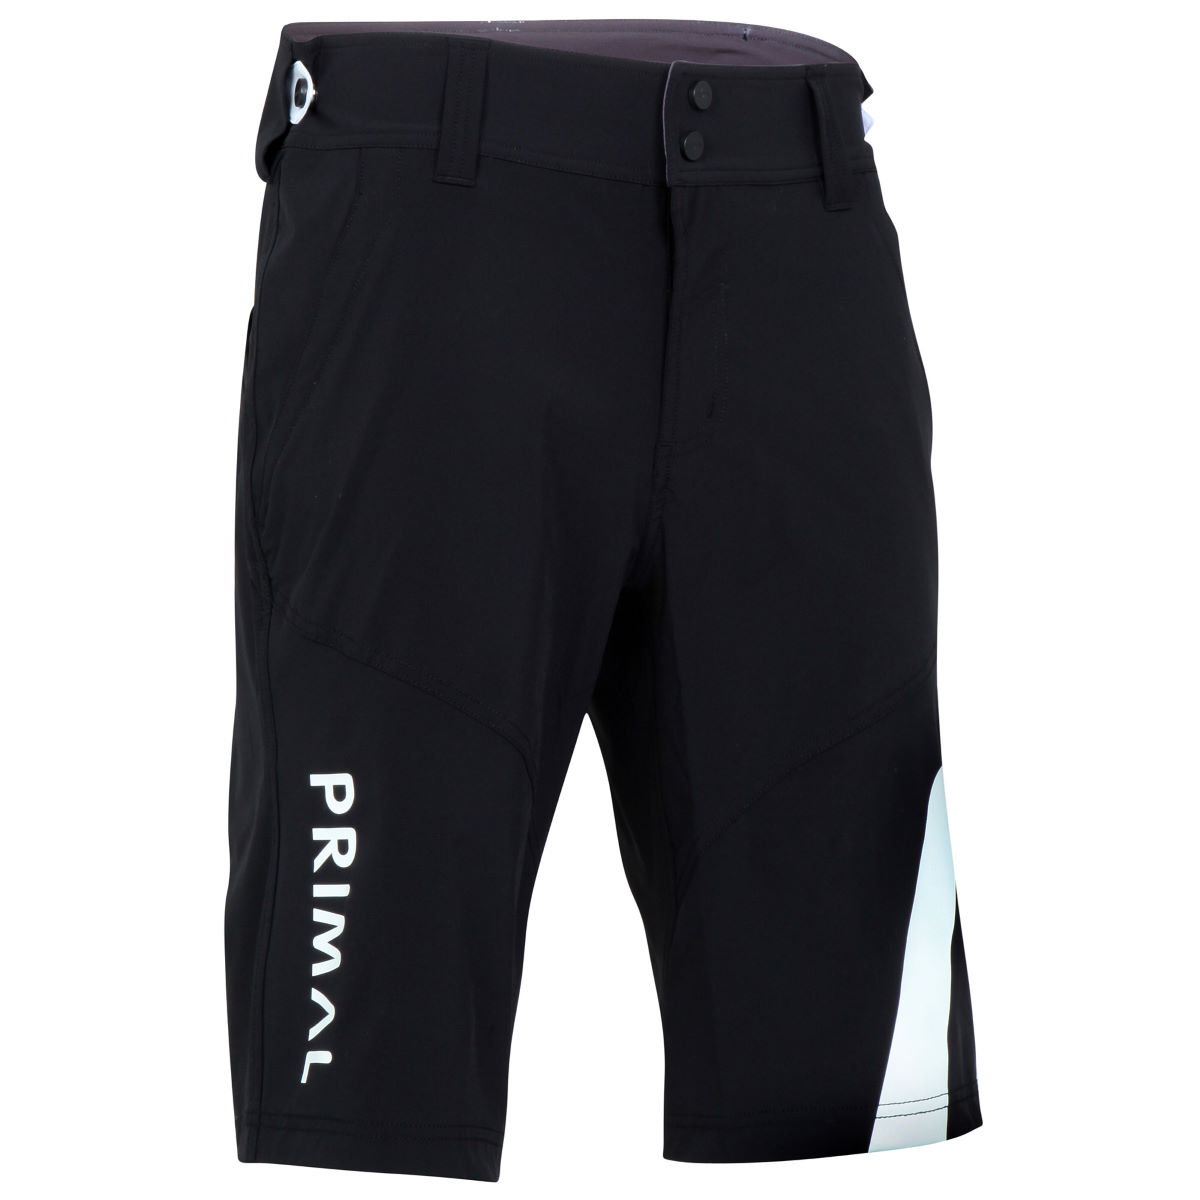 Short Primal Onyx Escade - XL Noir Shorts VTT